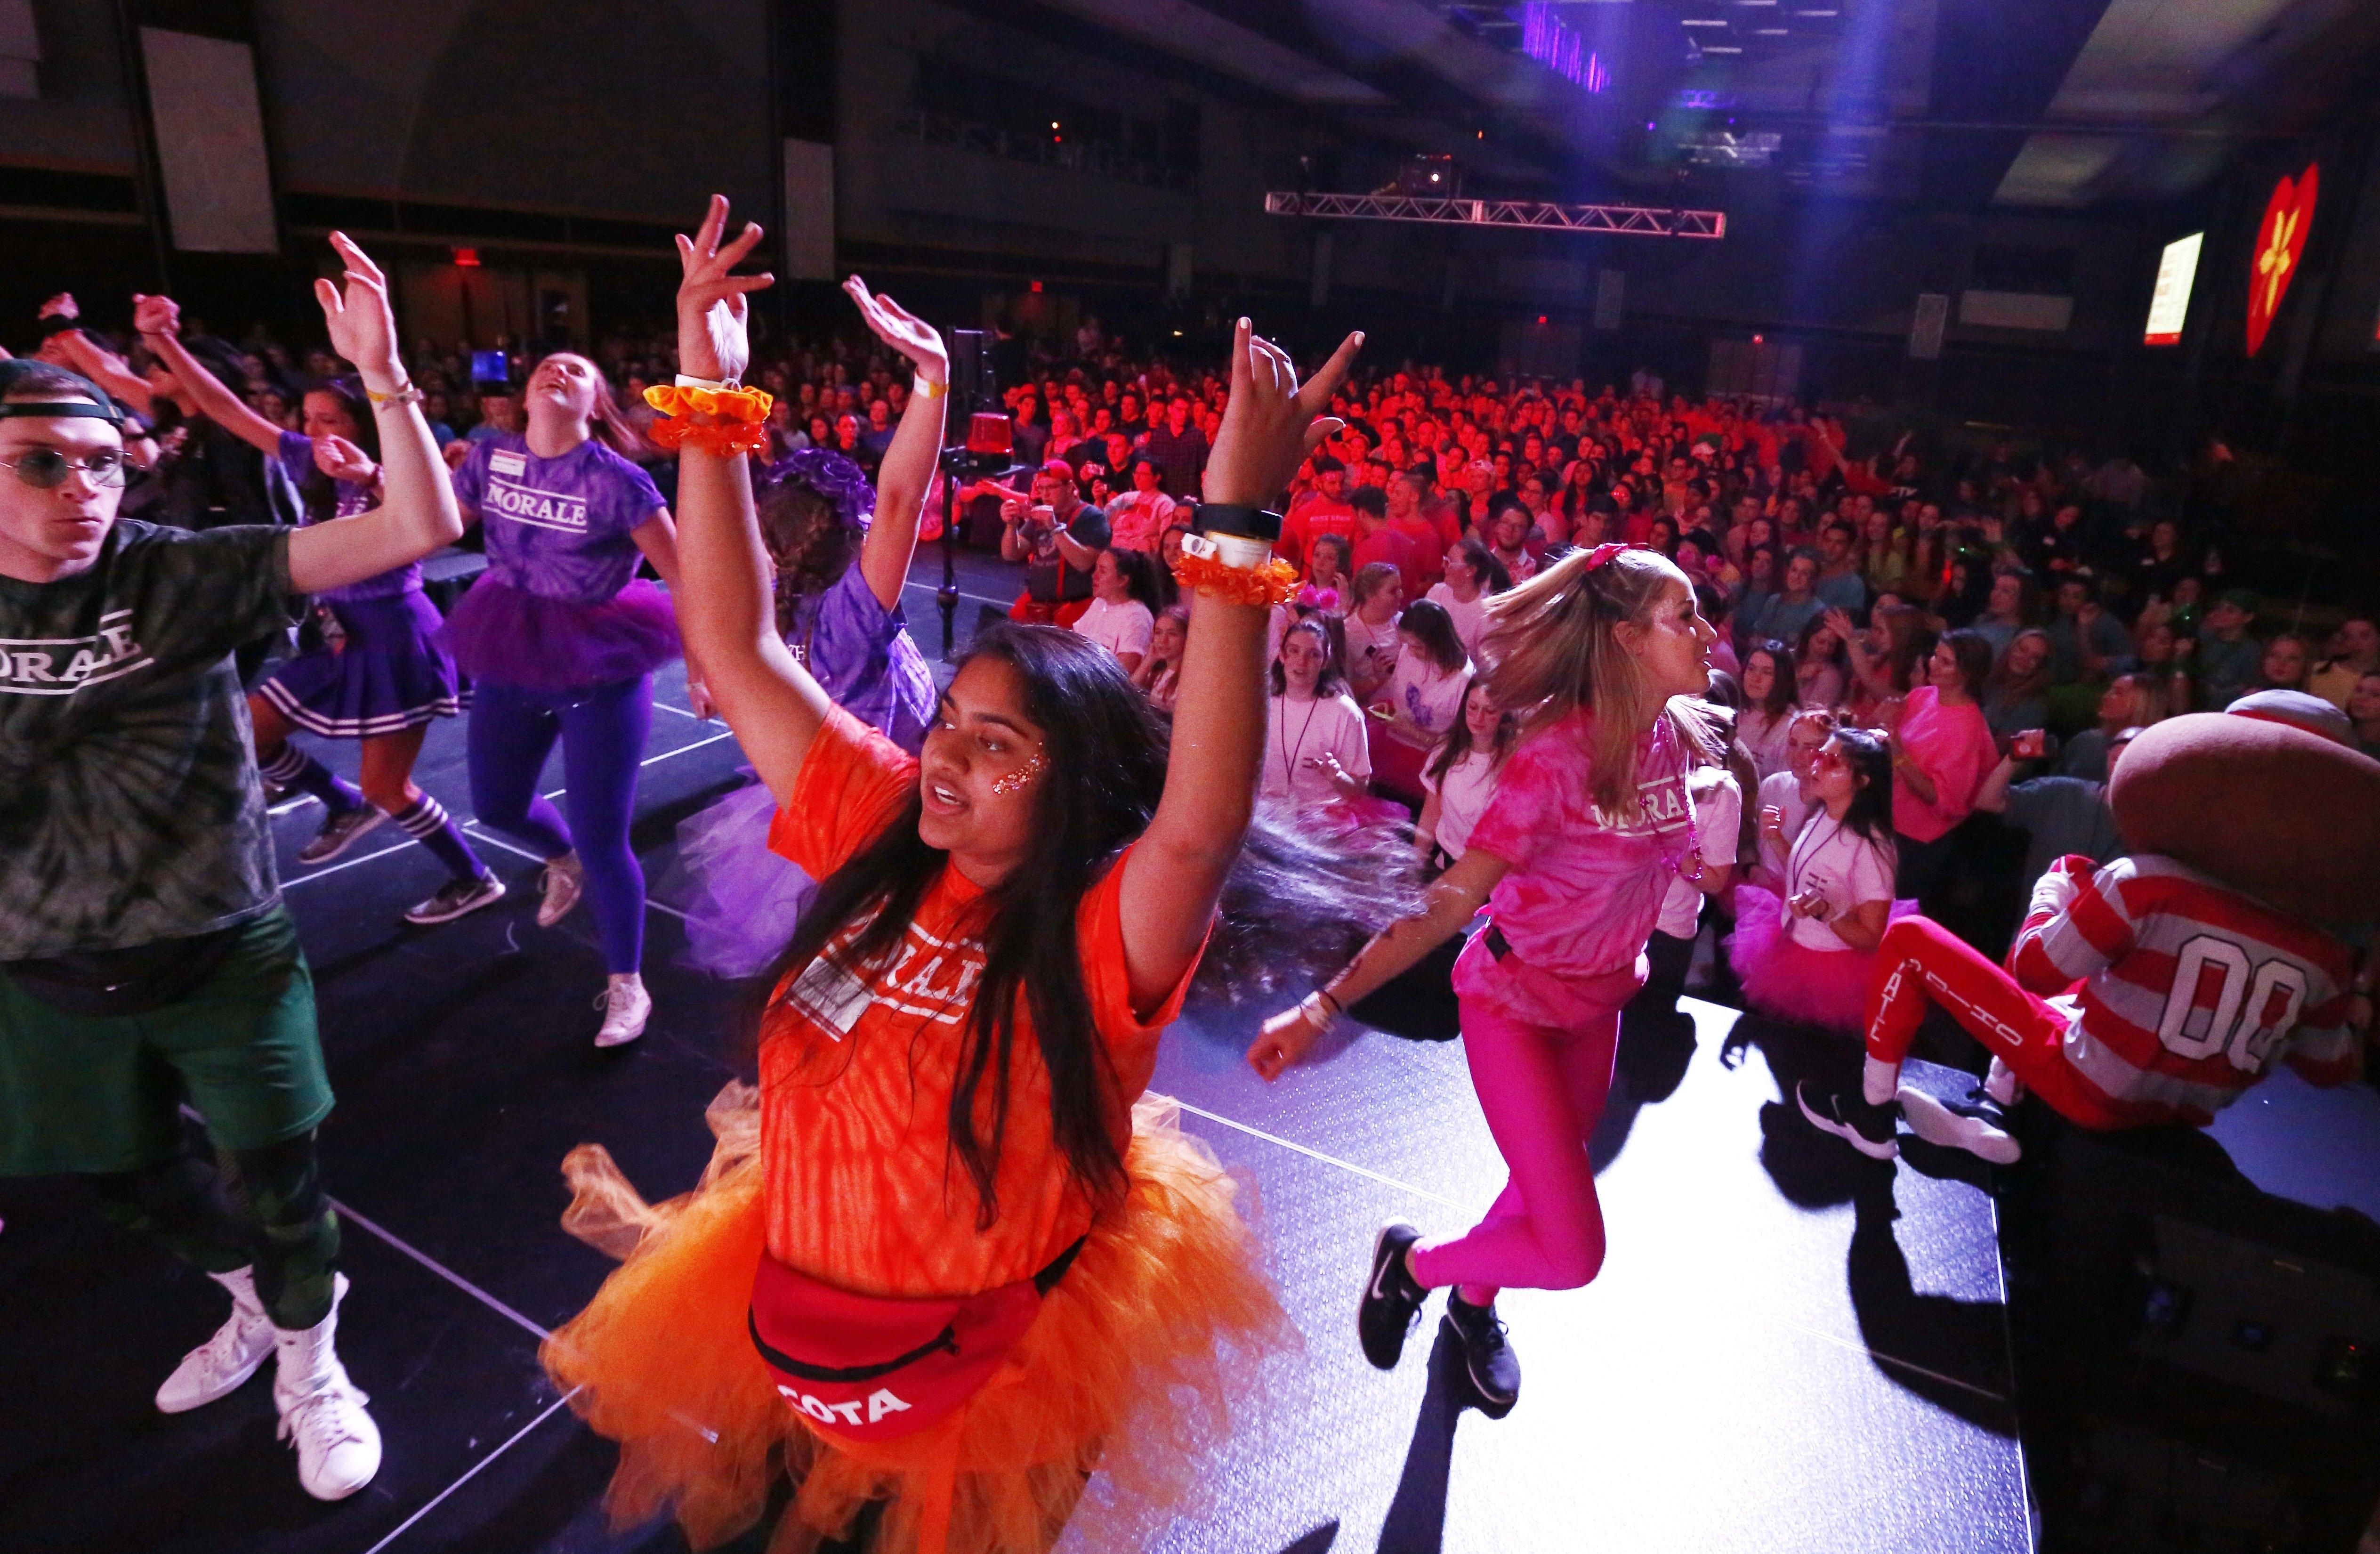 Partying with a purpose: Ohio State students take on pediatric